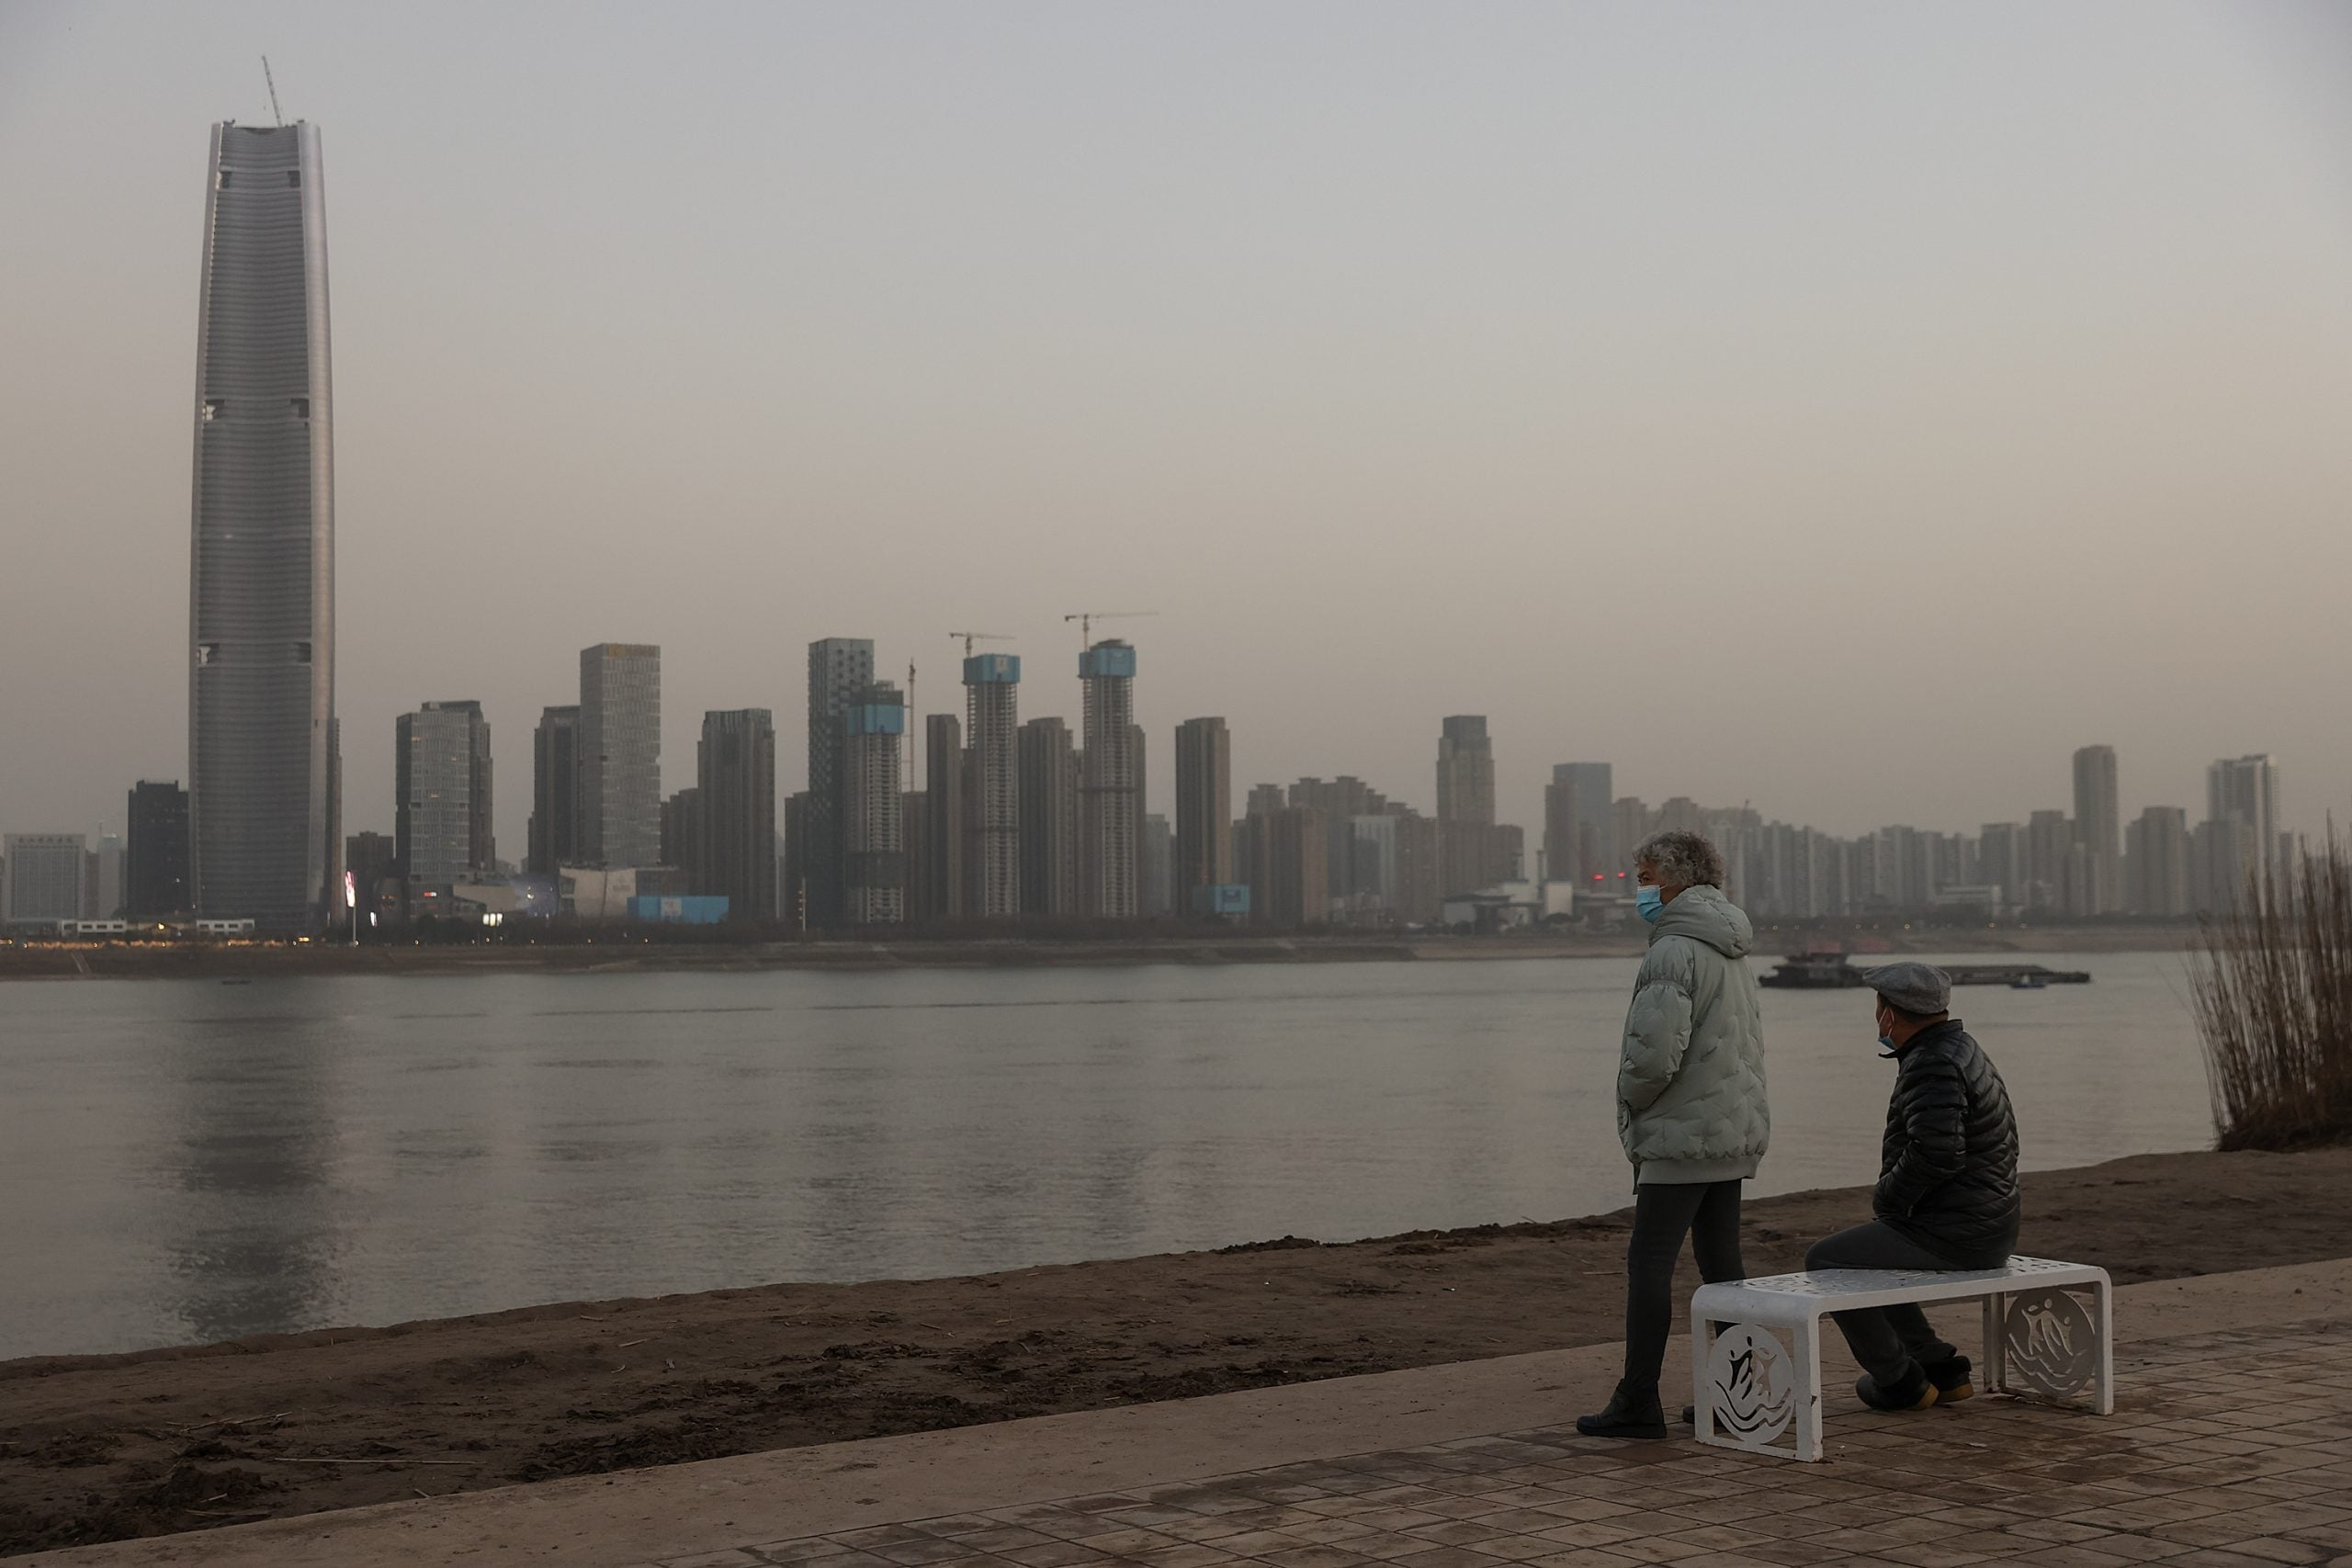 Wuhan, one year on from the Covid-19 outbreak